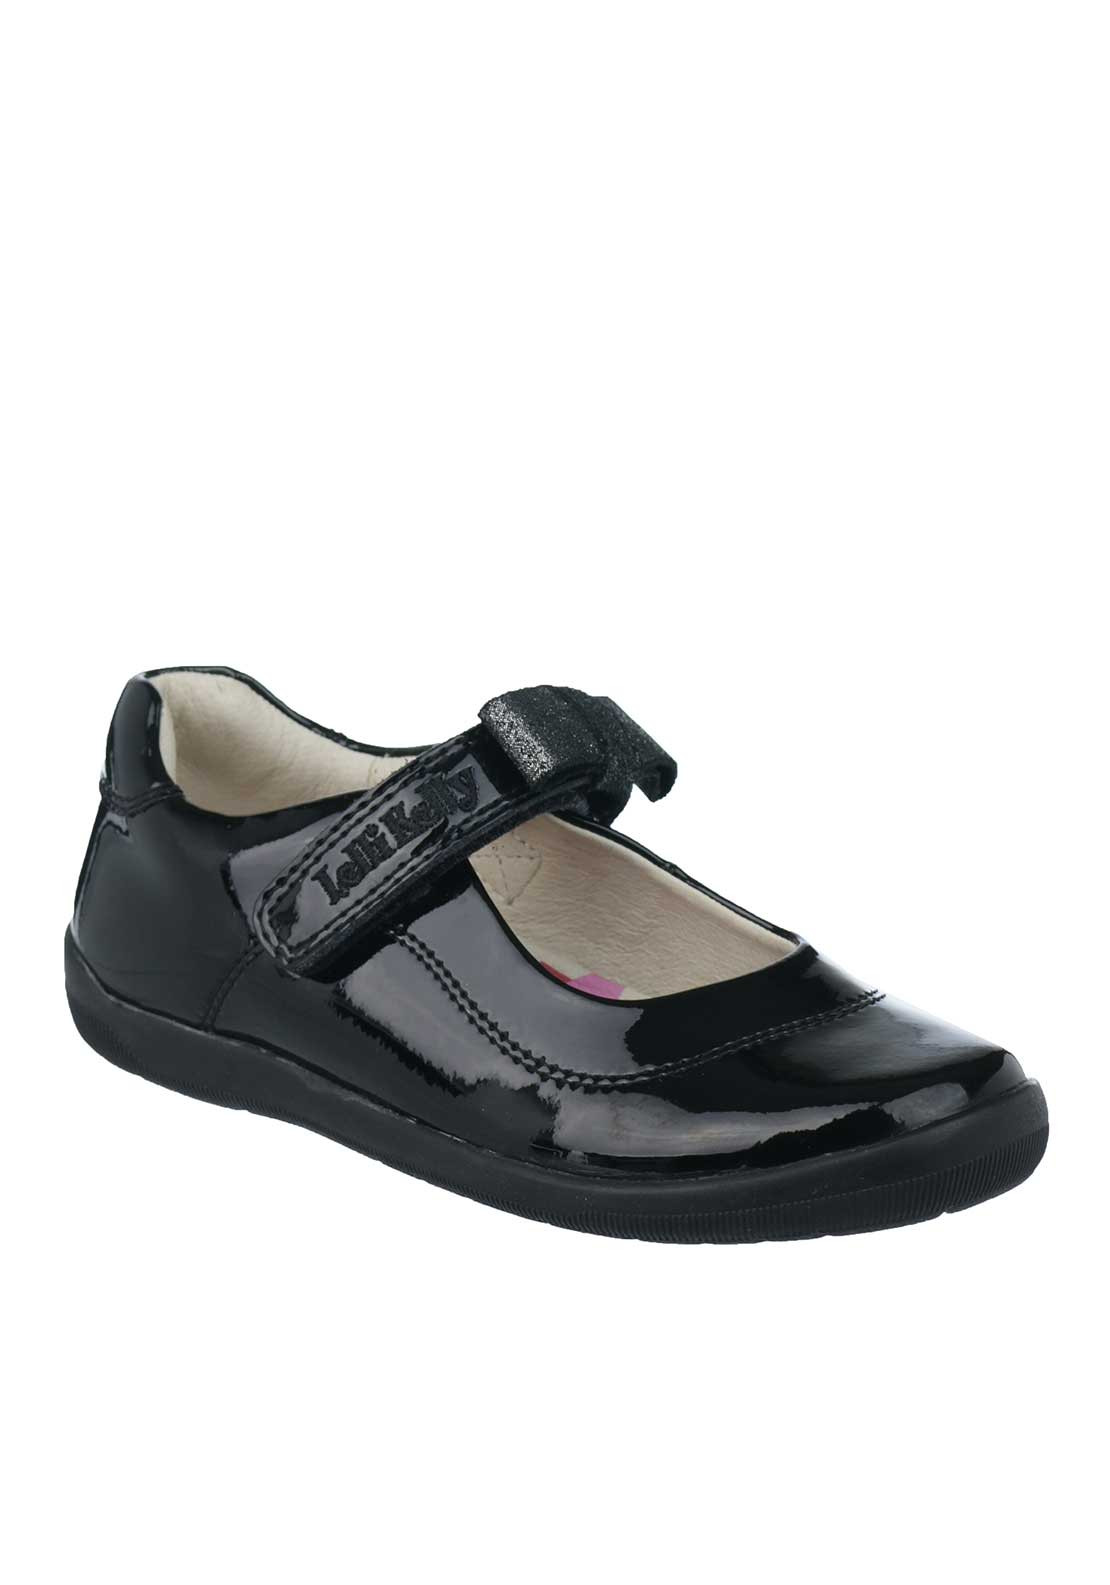 Lelli Kelly Girls Patent Leather Bow Mary Jane School Shoes, Black